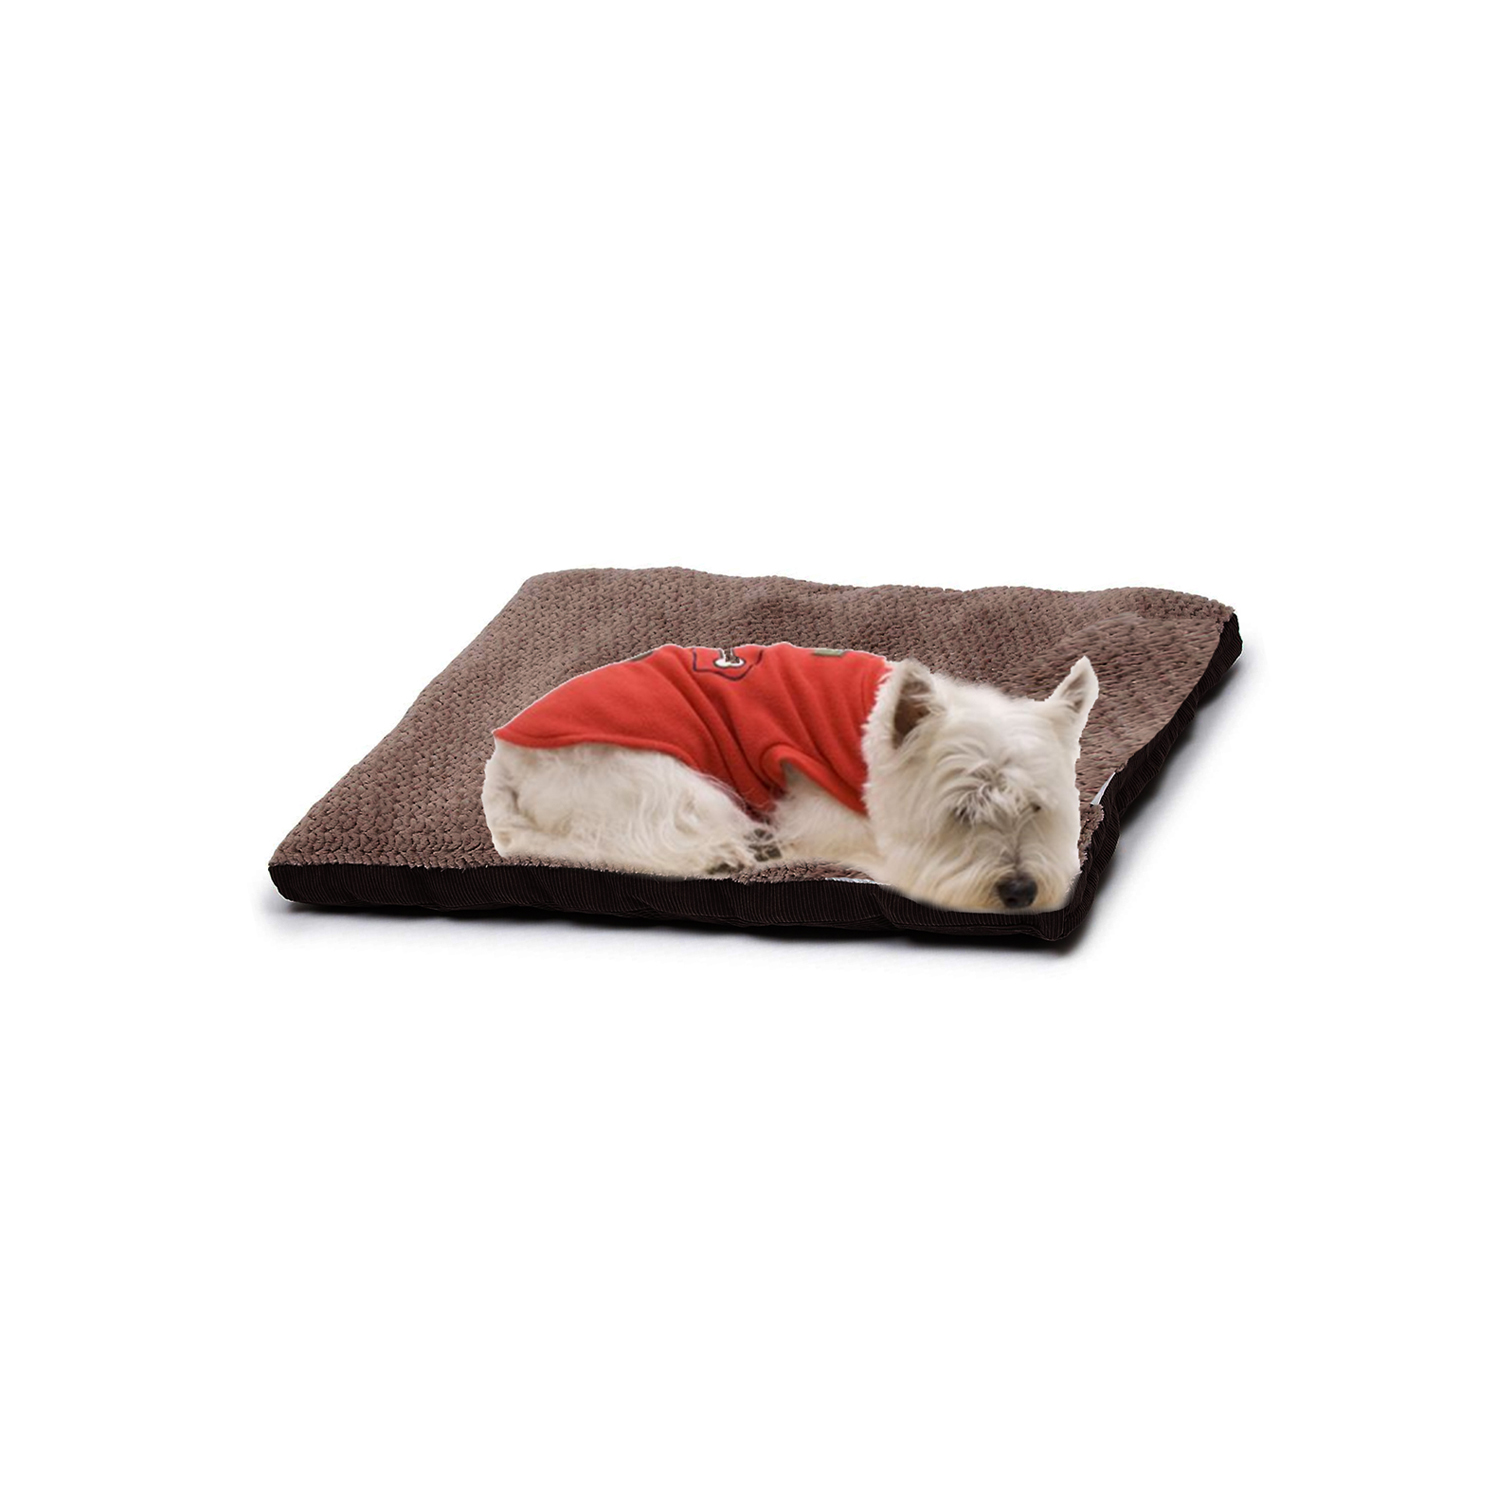 Vetbed Dog and Cat Bedding (Brown) 26 x 20